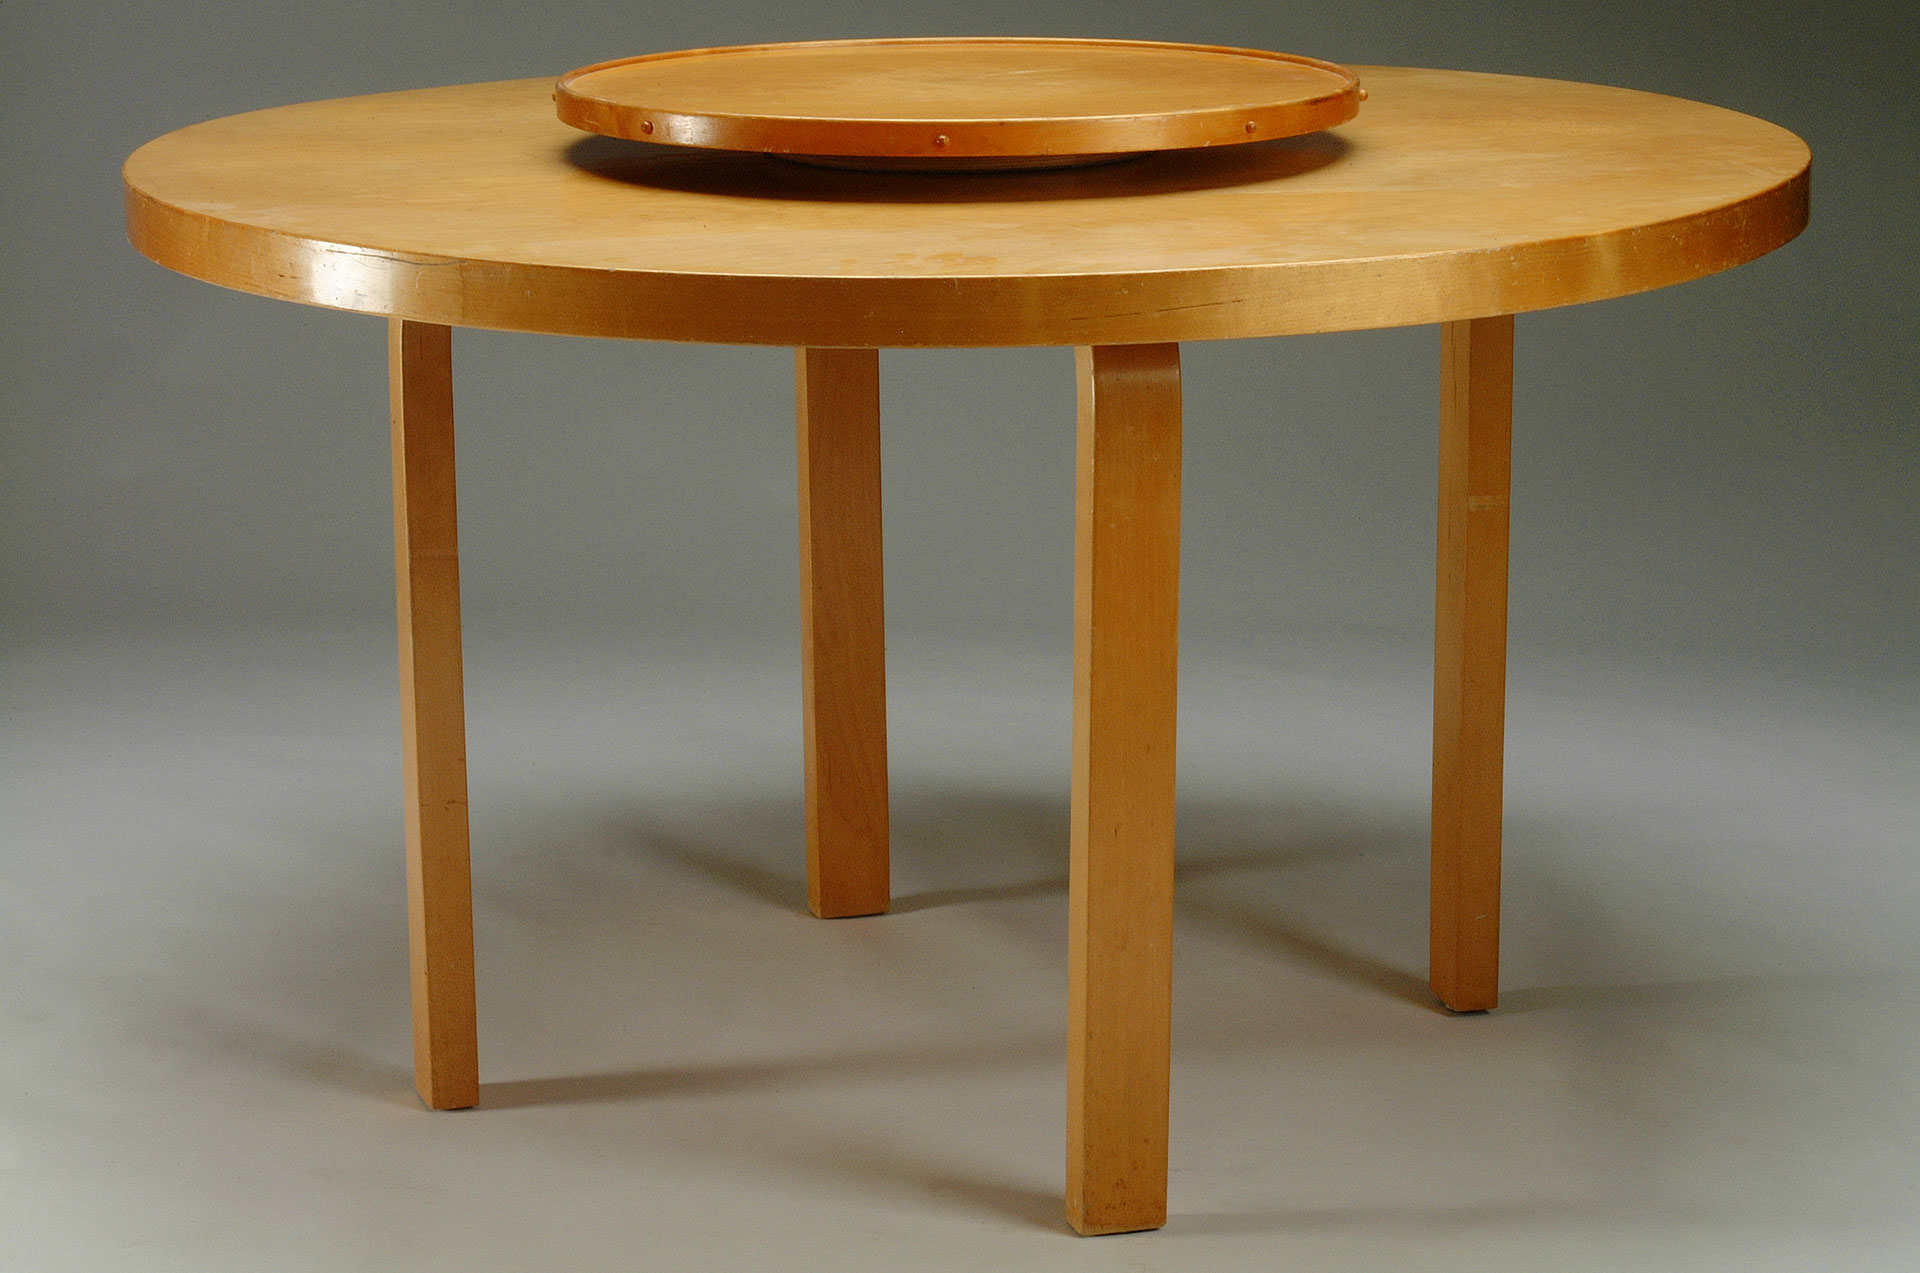 Lazy Susan Table Jacksons Lazy Susan Table Alvar Aalto